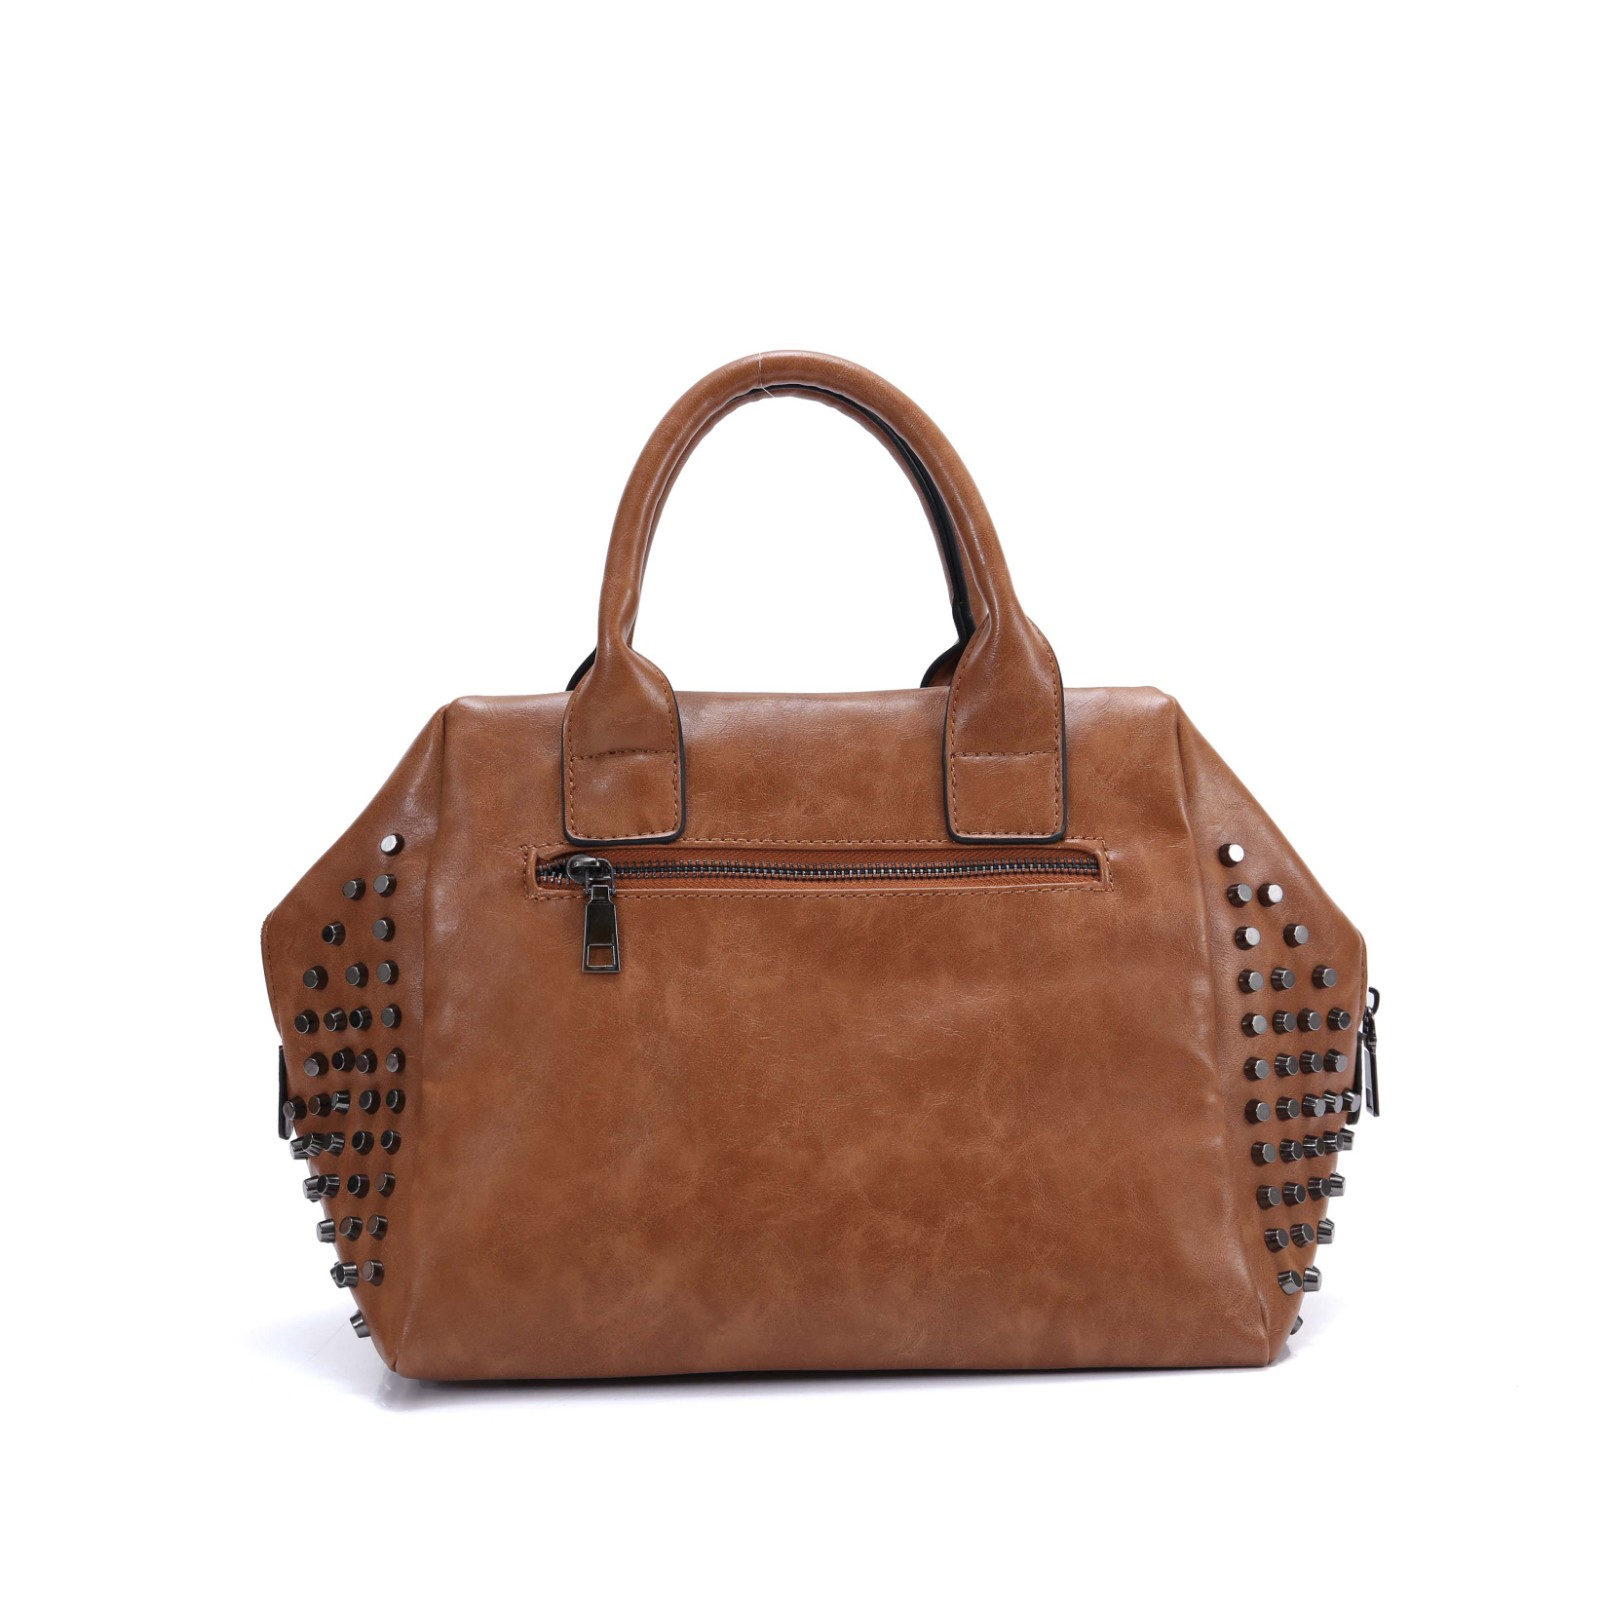 fashion pu leather handbags women online for school-7